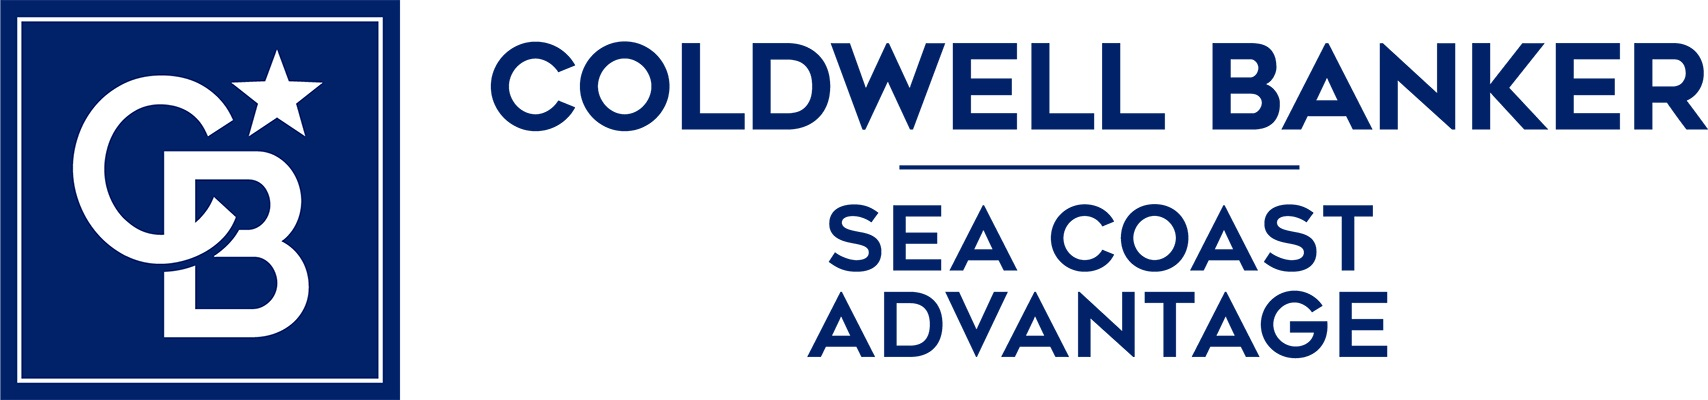 Brian Moxey - Coldwell Banker Sea Coast Advantage Realty Logo